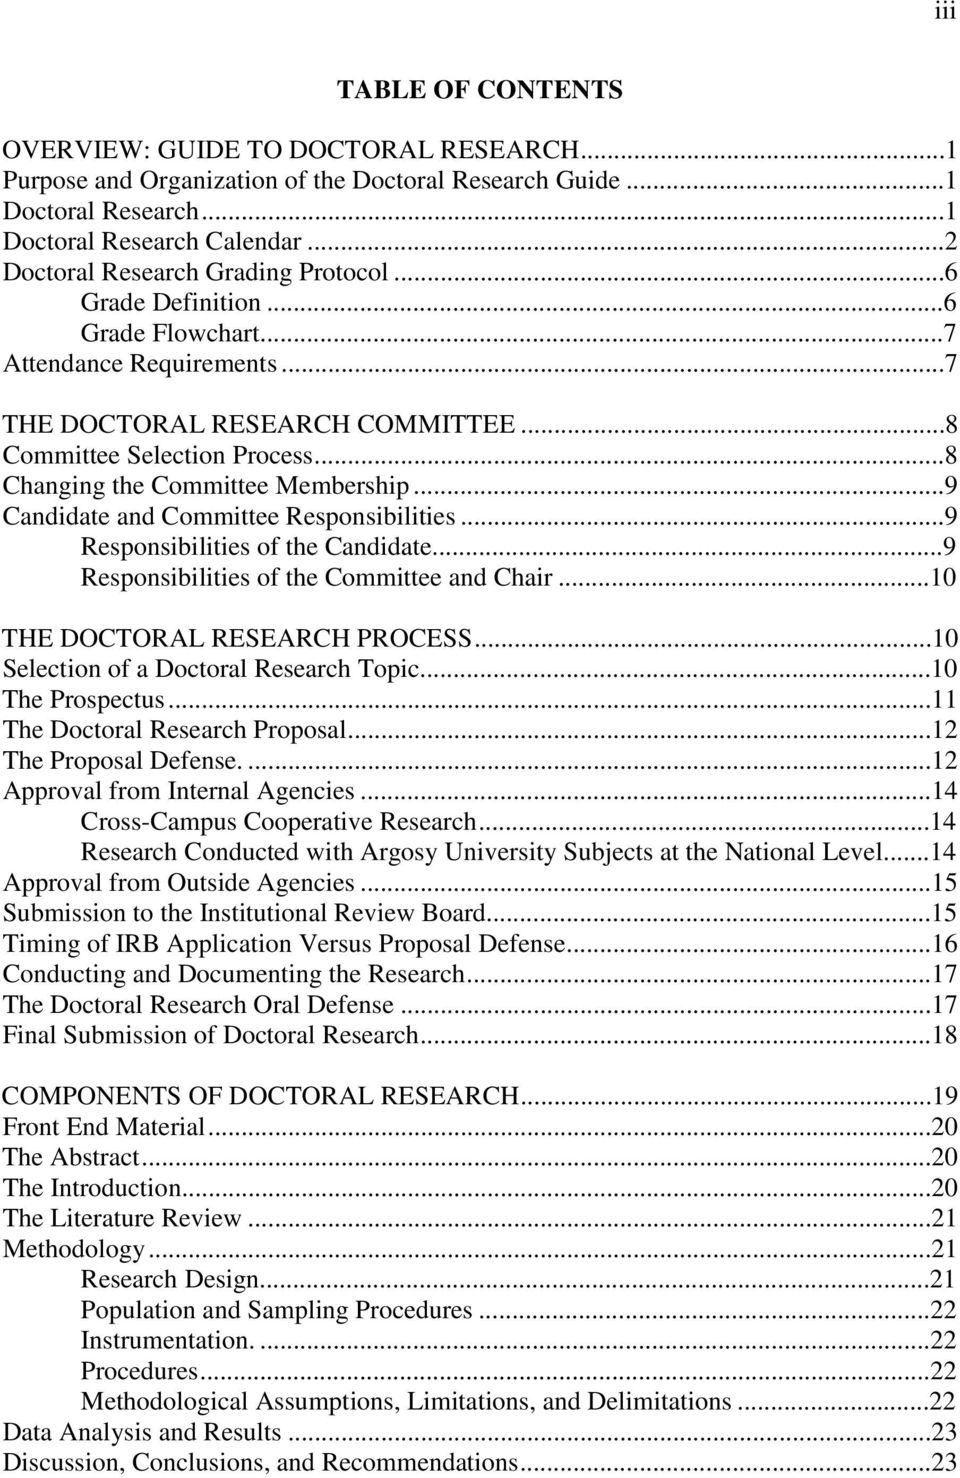 prepare dissertation prospectus defense I am preparing to defend my dissertation prospectus in just over 1 week at least in my program, the prospectus defense is a requirement for all phd students.